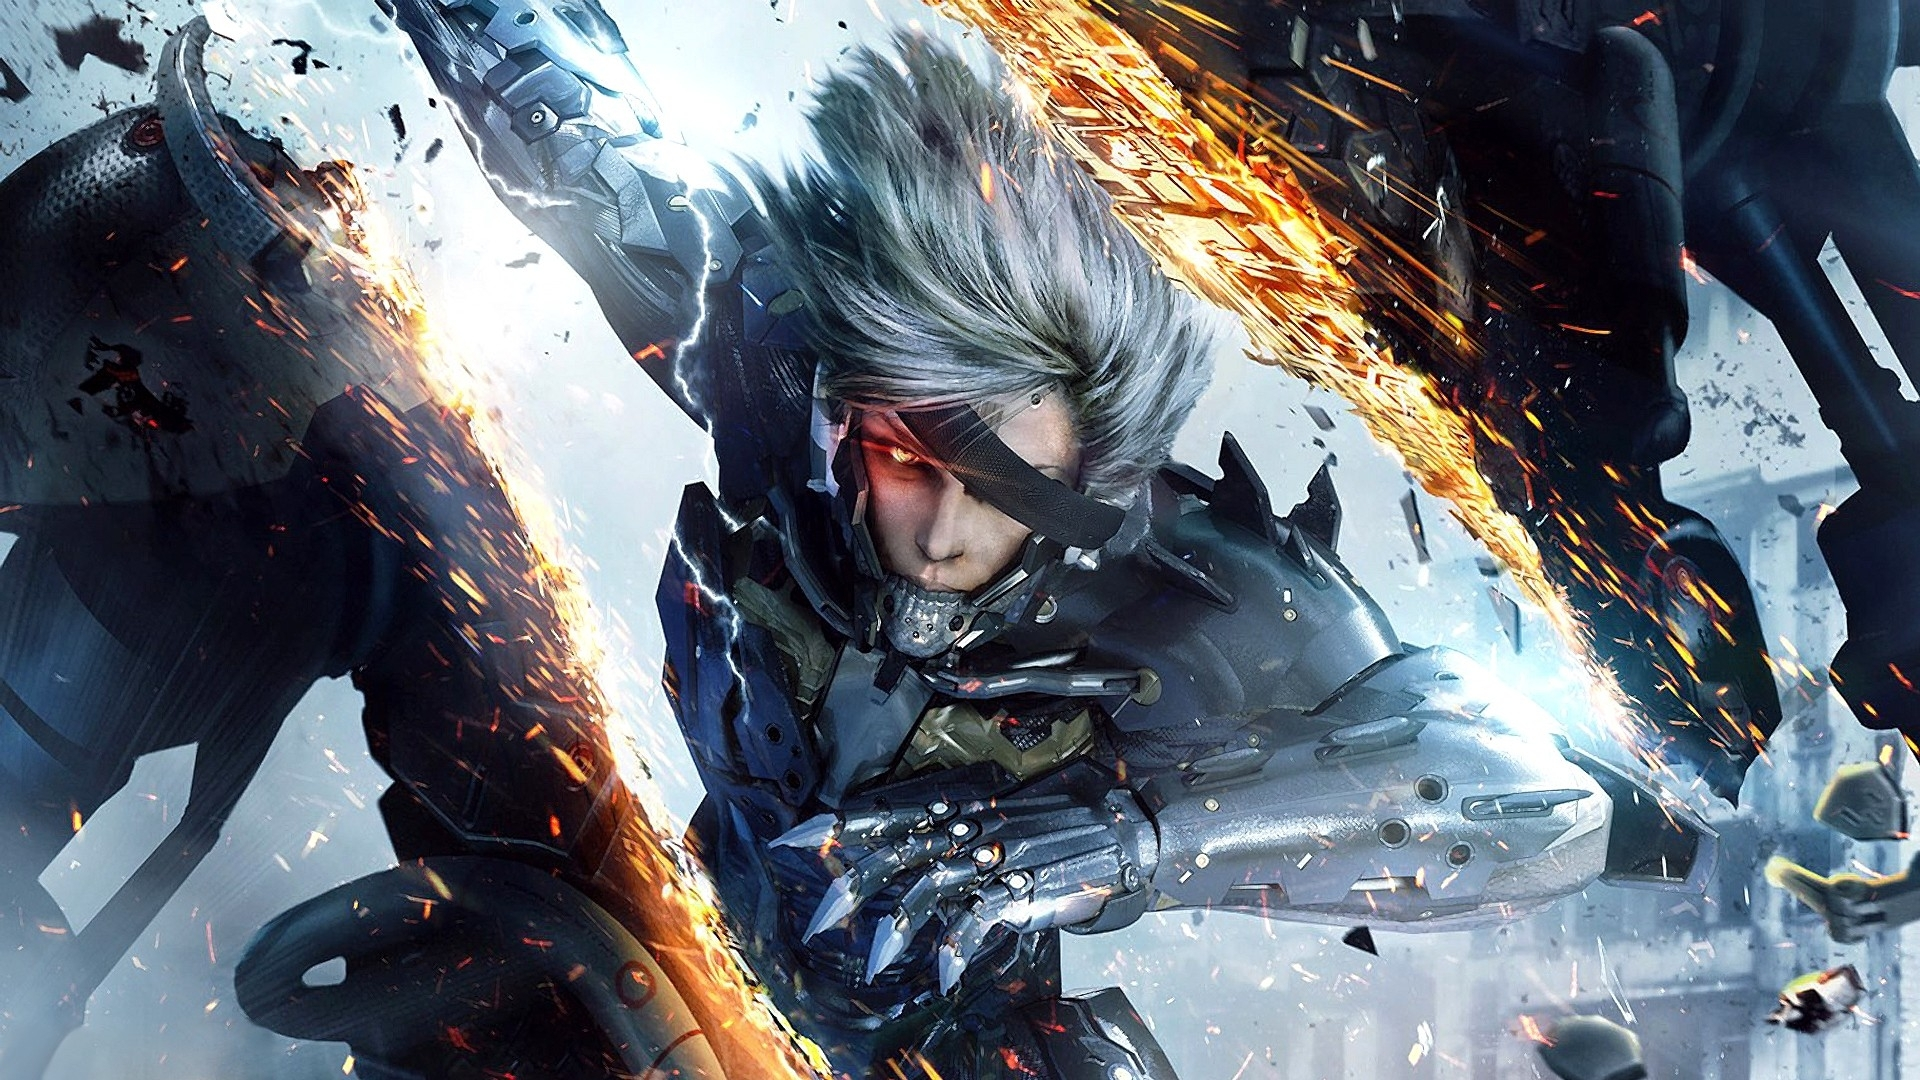 10 Best Metal Gear Rising Revengeance Wallpaper FULL HD 1080p For PC Background